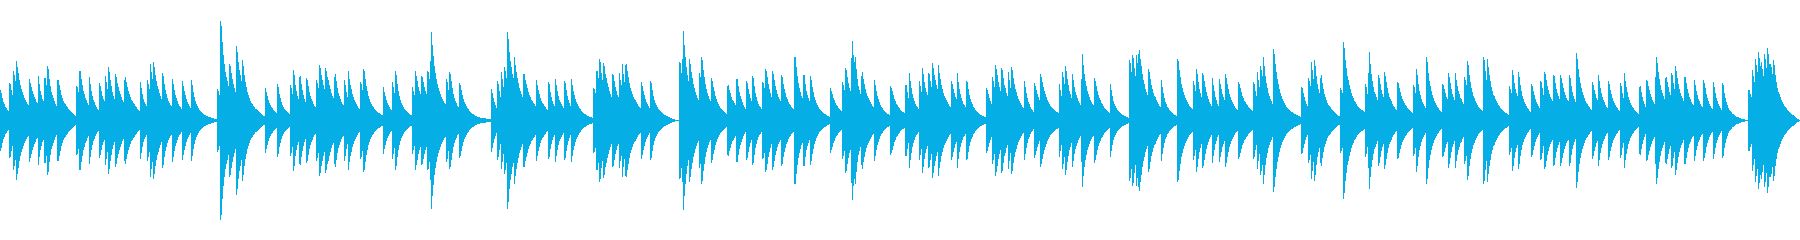 Healing with 9 kinds of pure Solfeggio's reproduced waveform